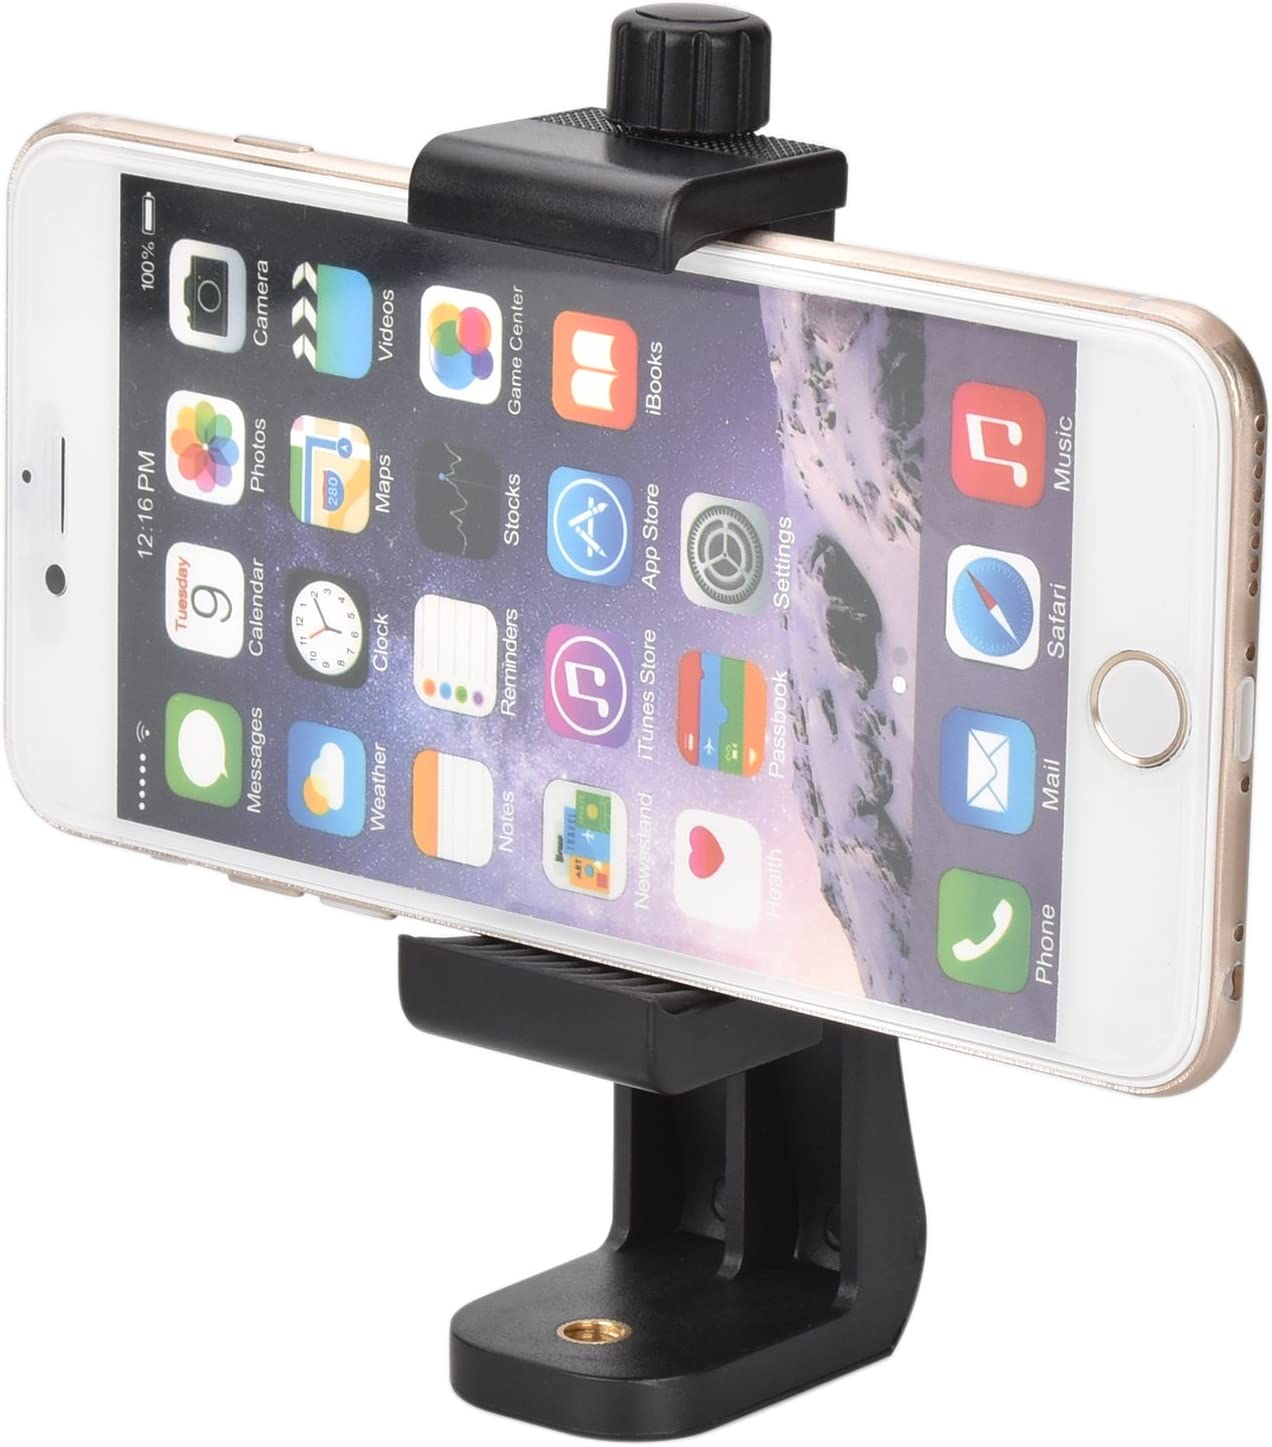 Fit Tripod with 1//4-20 Connection Tripod Mount for Smart Phone up to 6 eLander 360/º Swivel Selfie Video Recording Camera Tripod Adapter Smart Phone Tripod Mount Adaptor